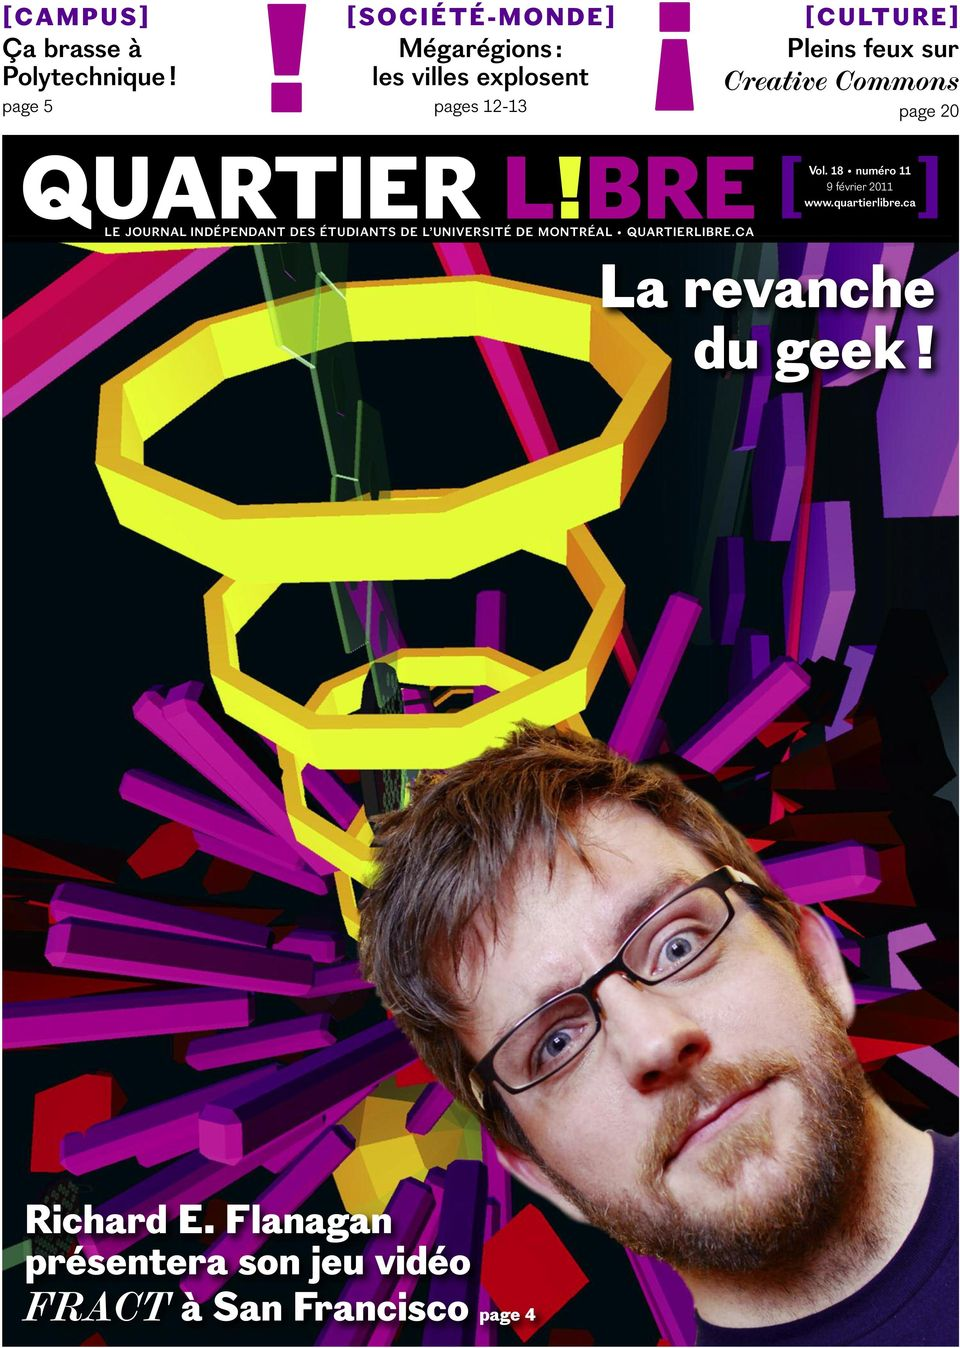 [CULTURE] Pleins feux sur Creative Commons page 20 QUARTIER L!